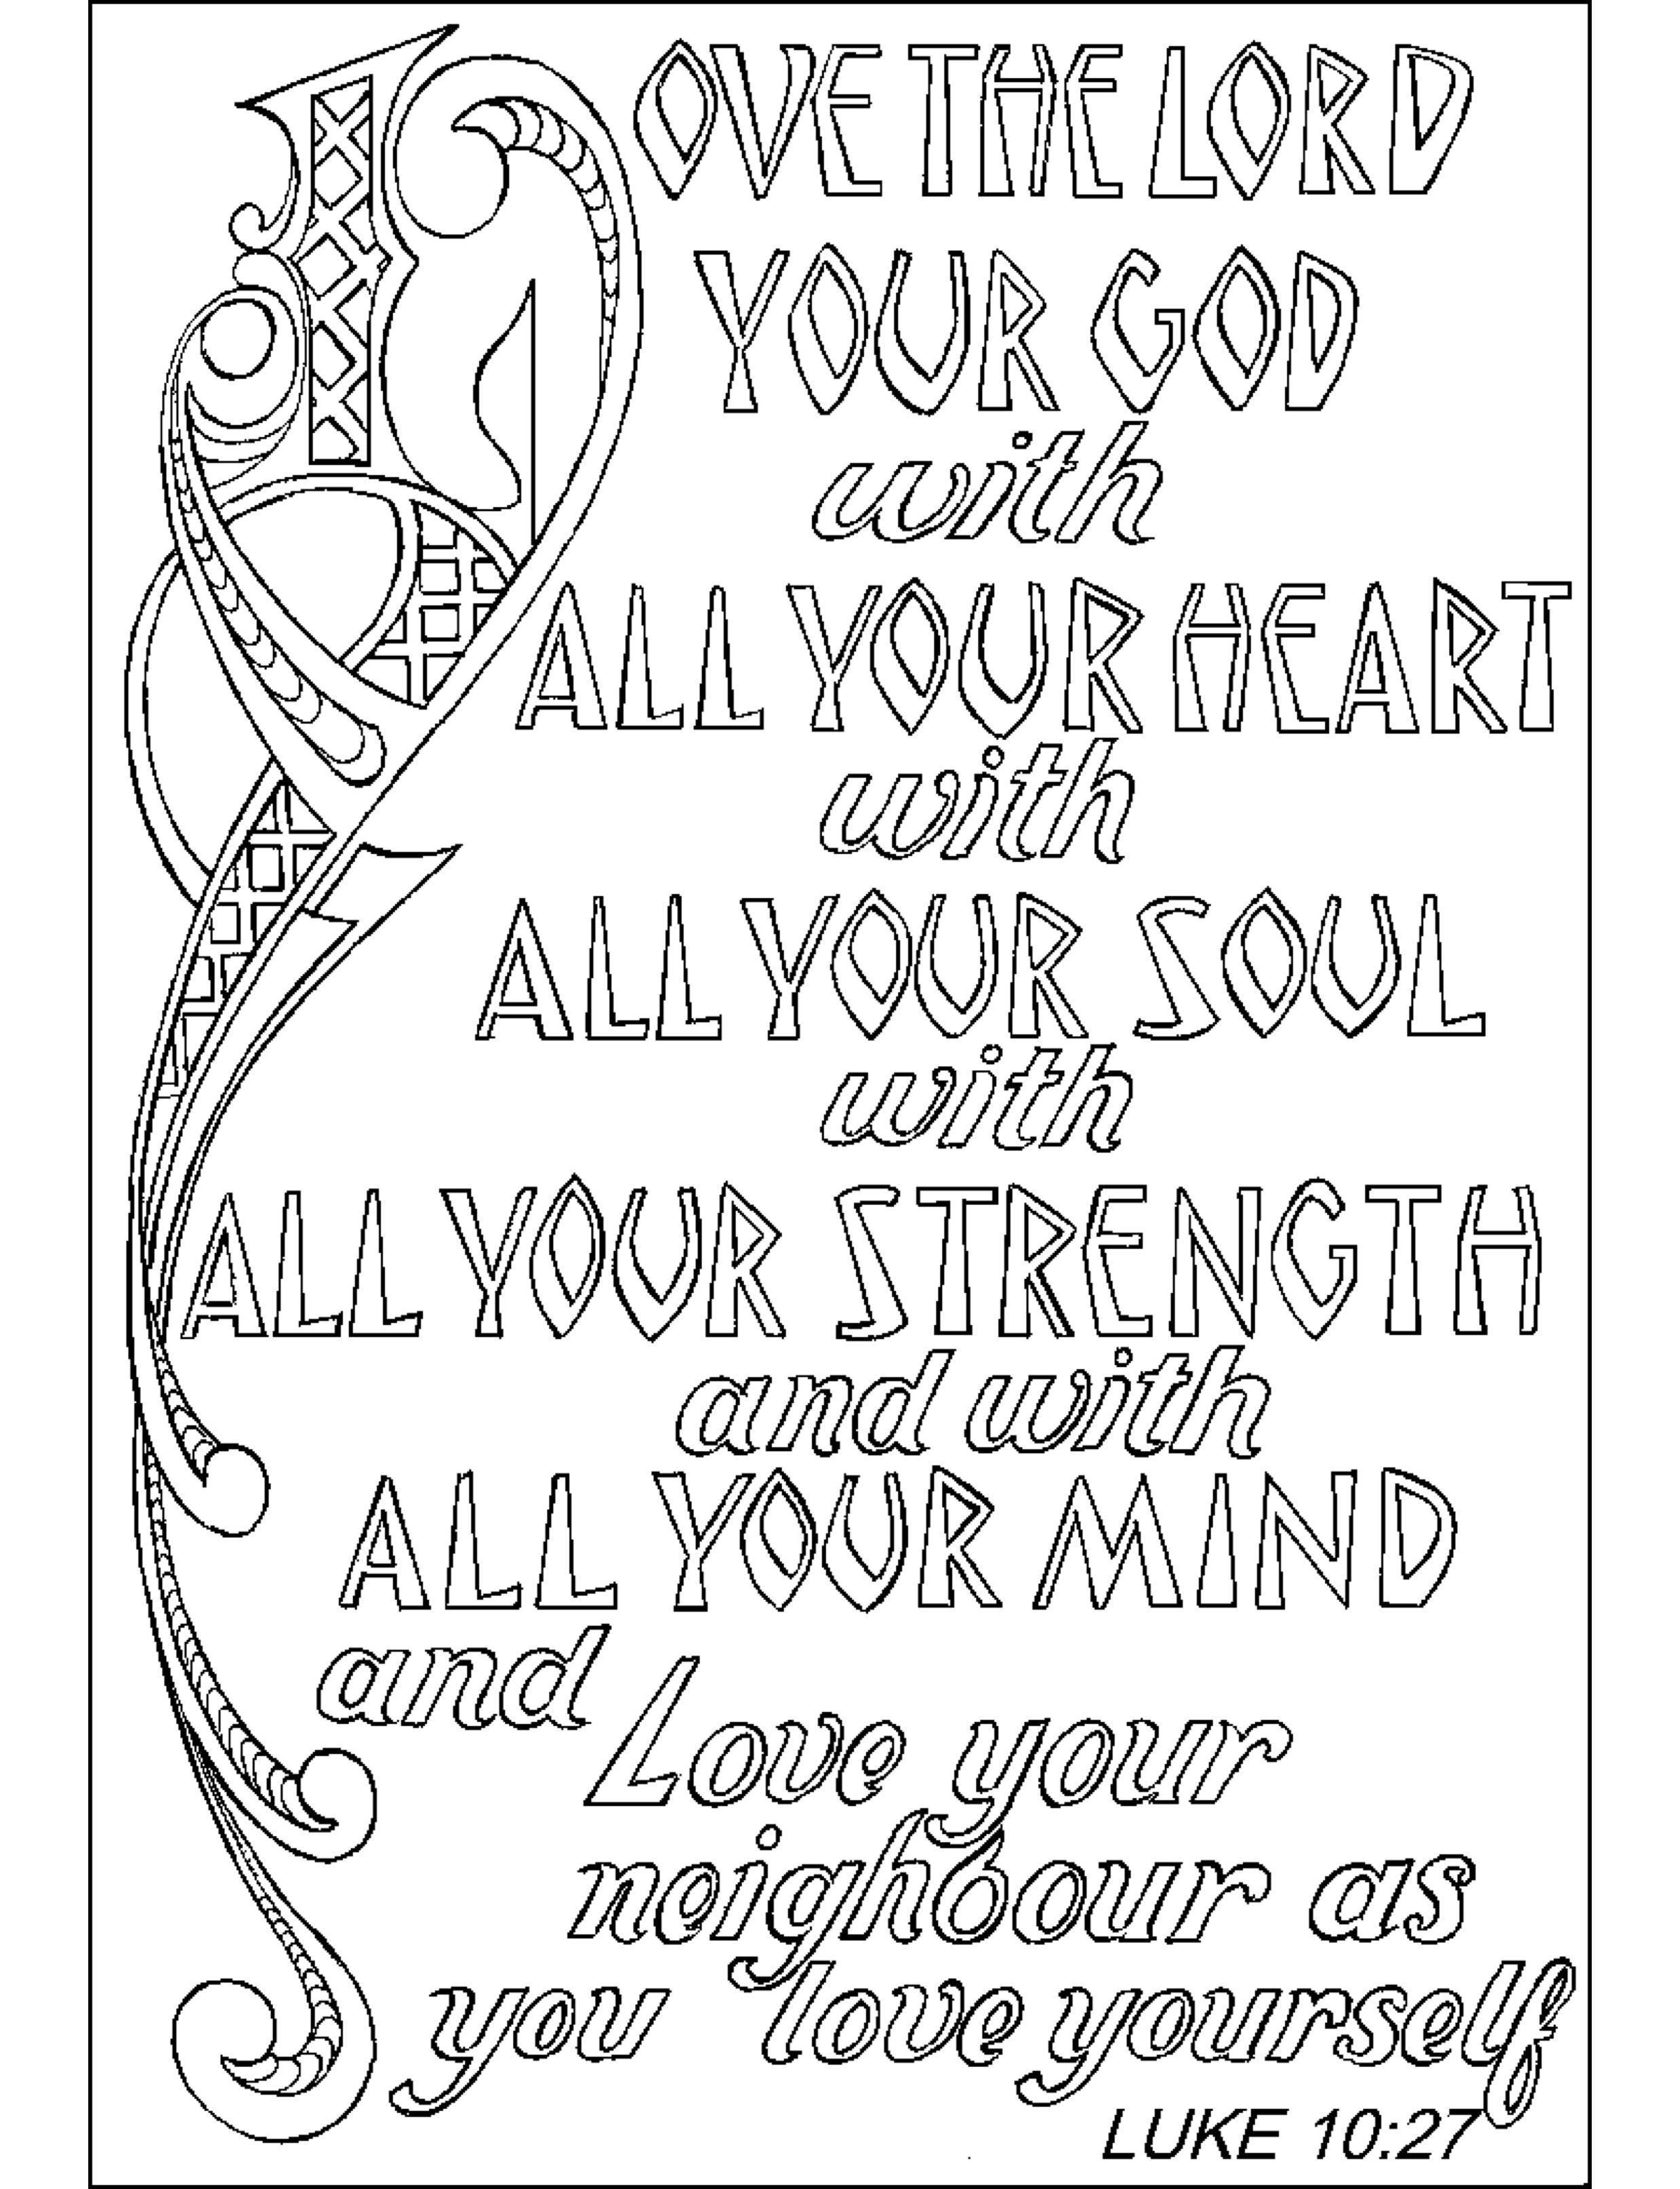 Printable coloring pages about the bible - Bible Verse Coloring Pages Google Search